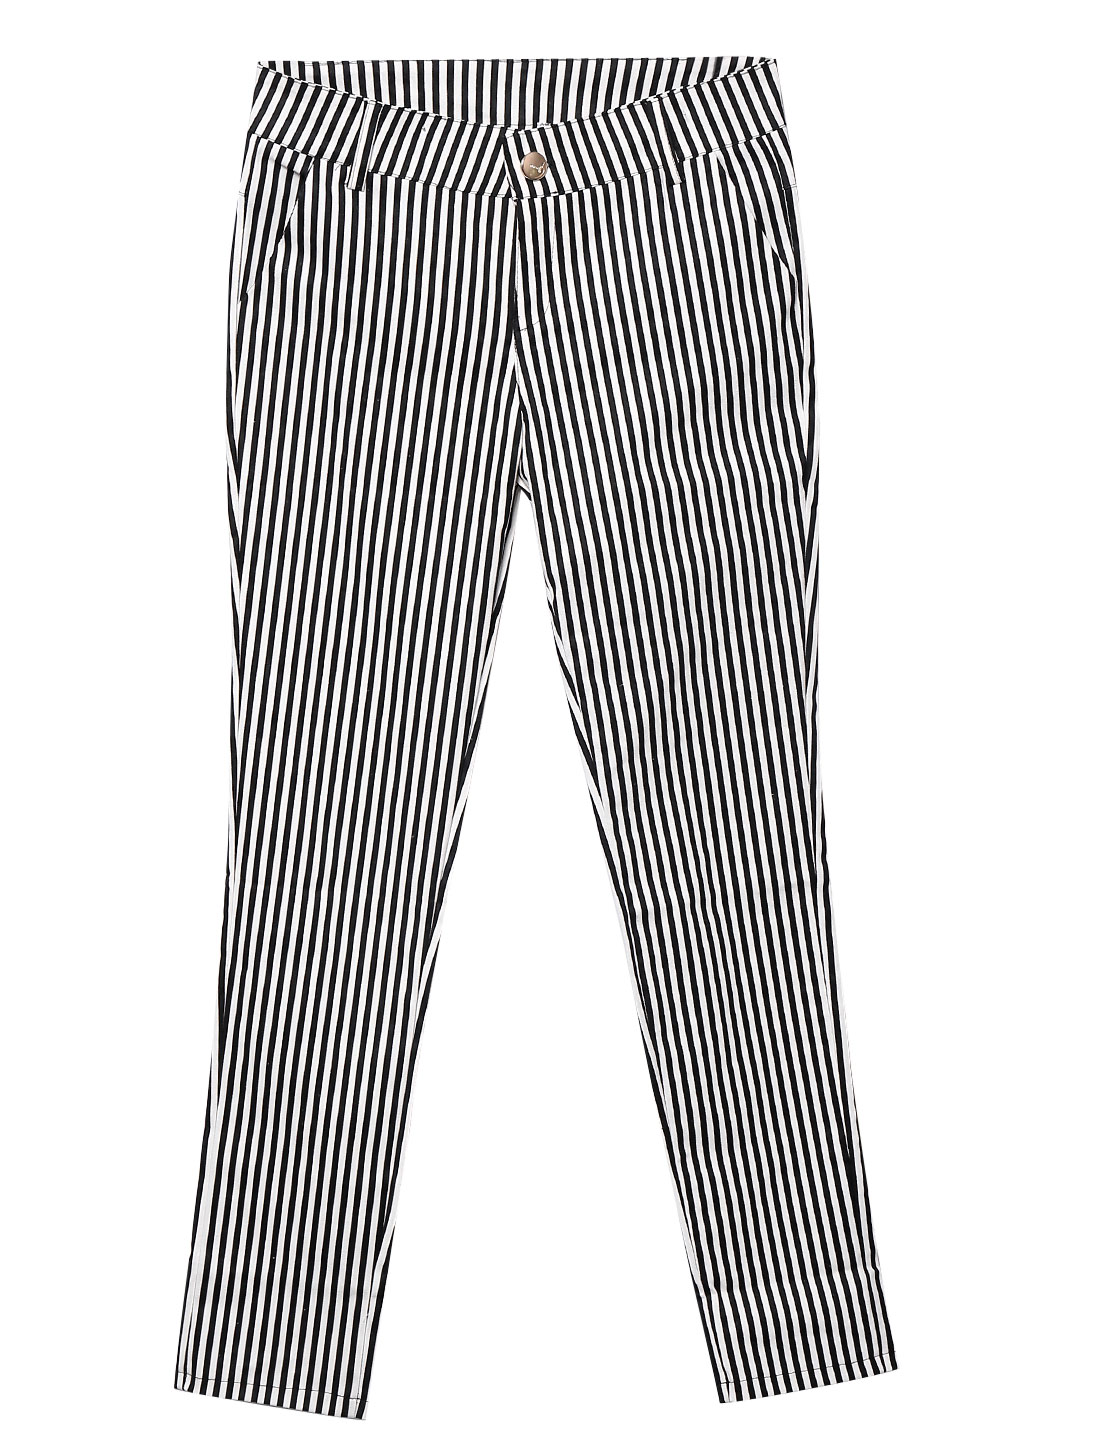 Lady Zip Fly Stripes Pattern Fashion Casual Cropped Pants Black White S